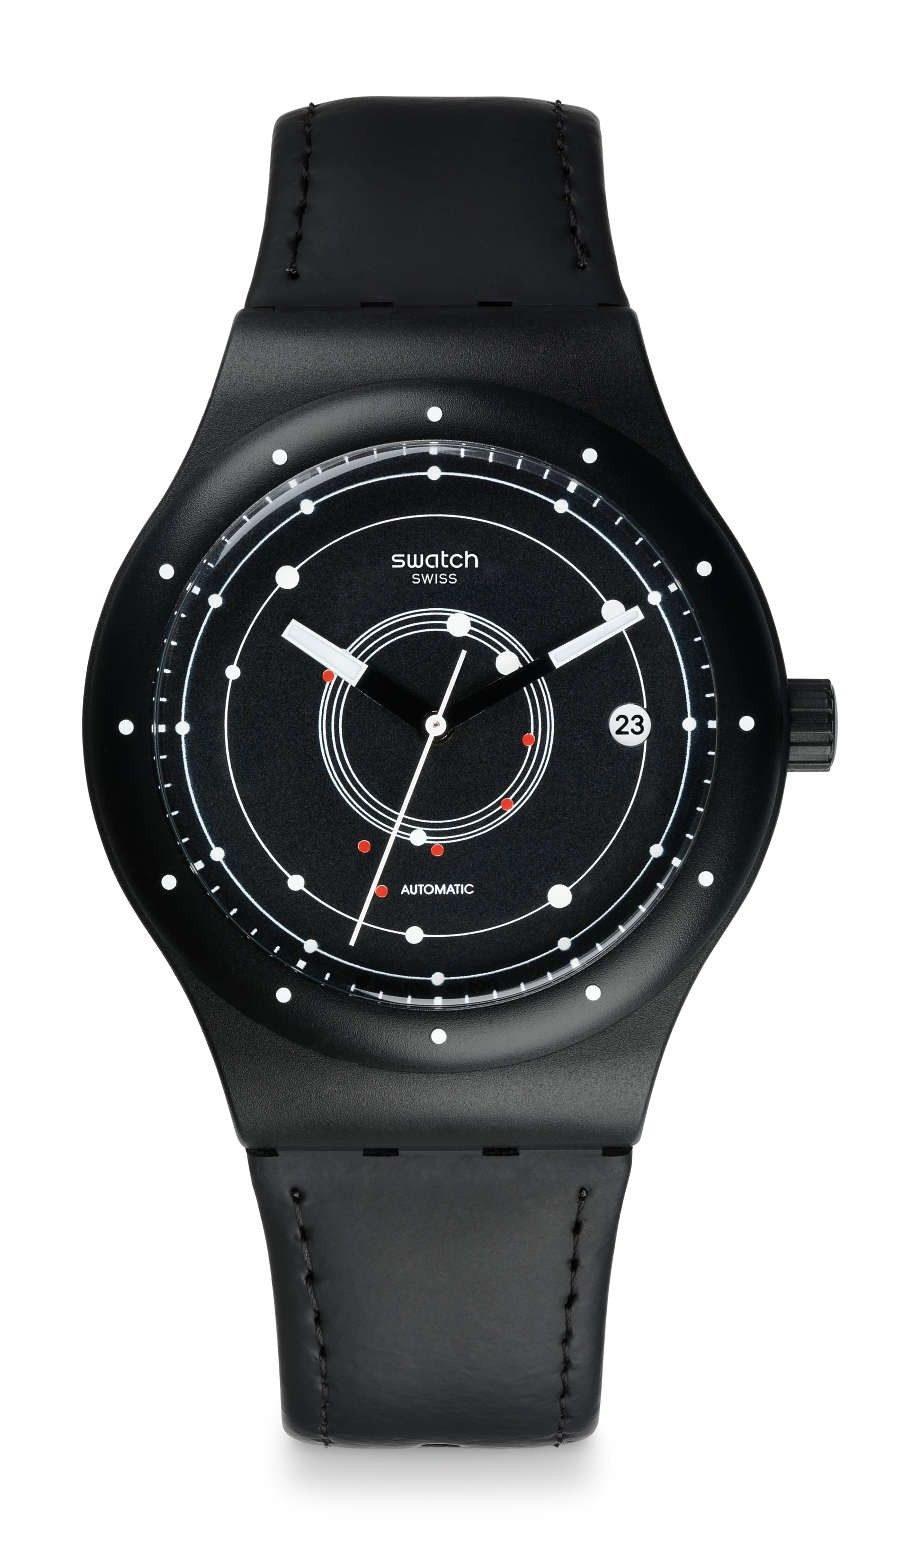 swatch® us sistem black sutb400 watches and timepieces swatch® us sistem black sutb400 black watchesmen